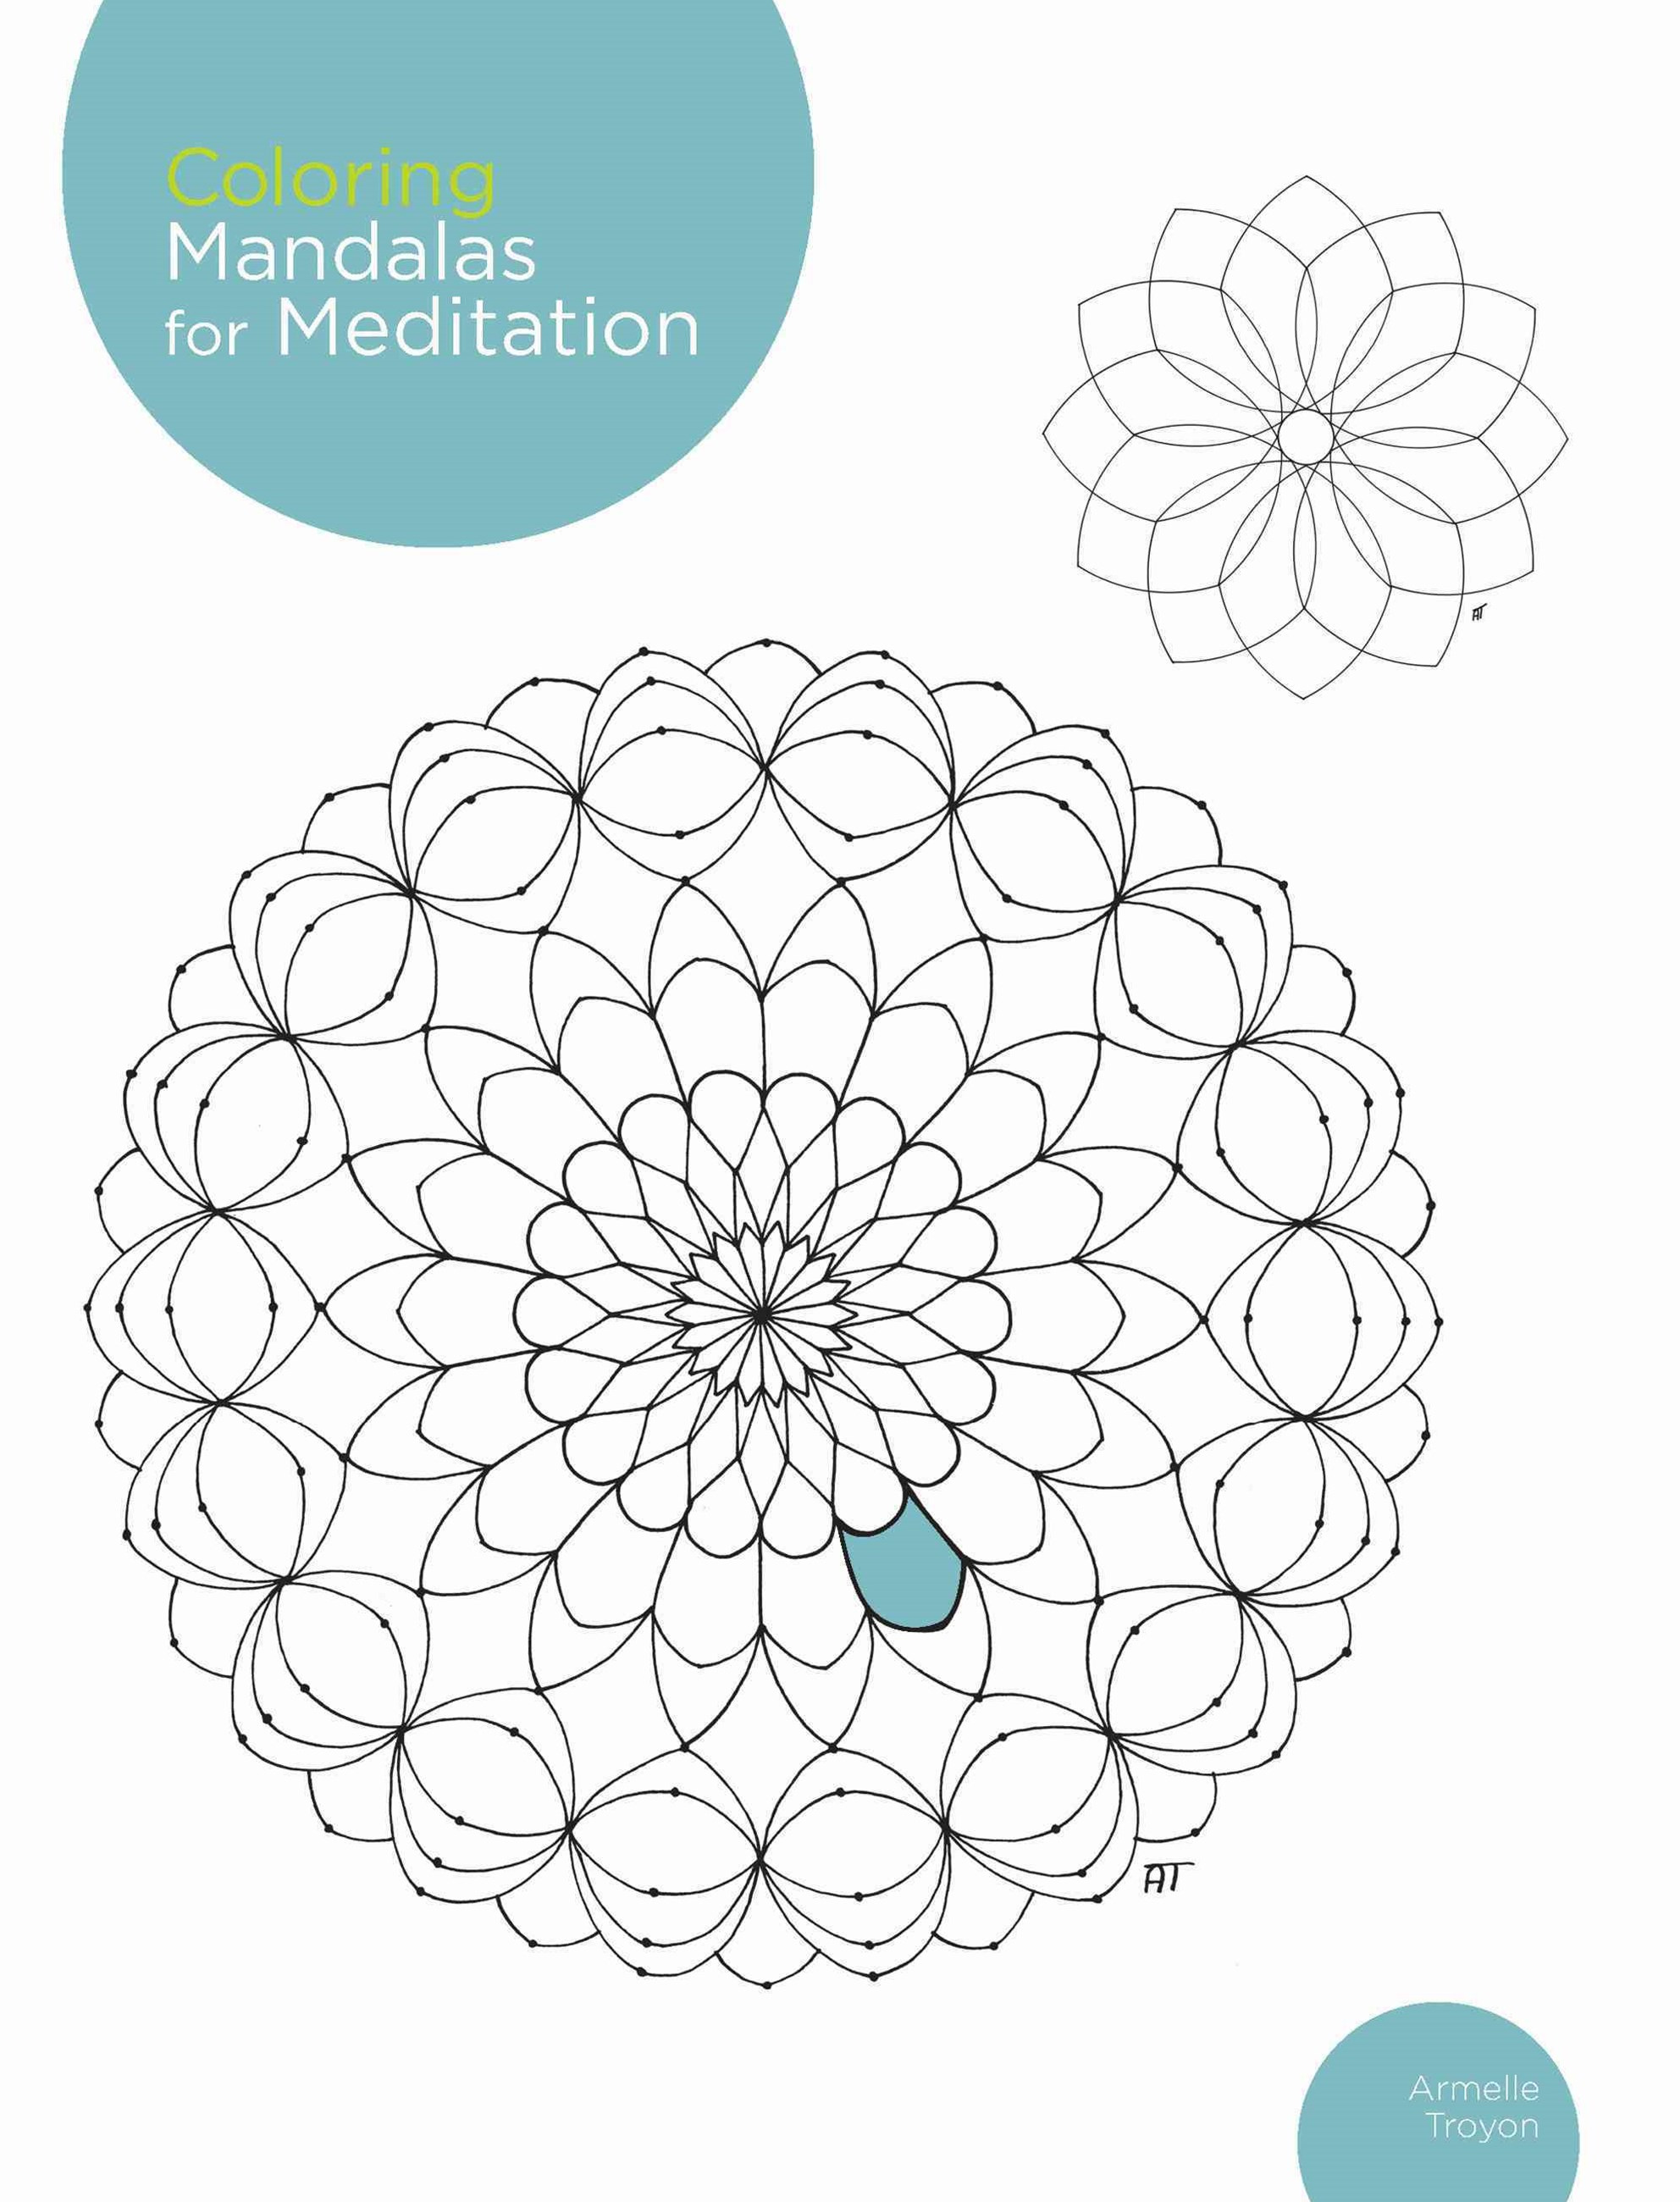 Coloring Mandalas for Meditation